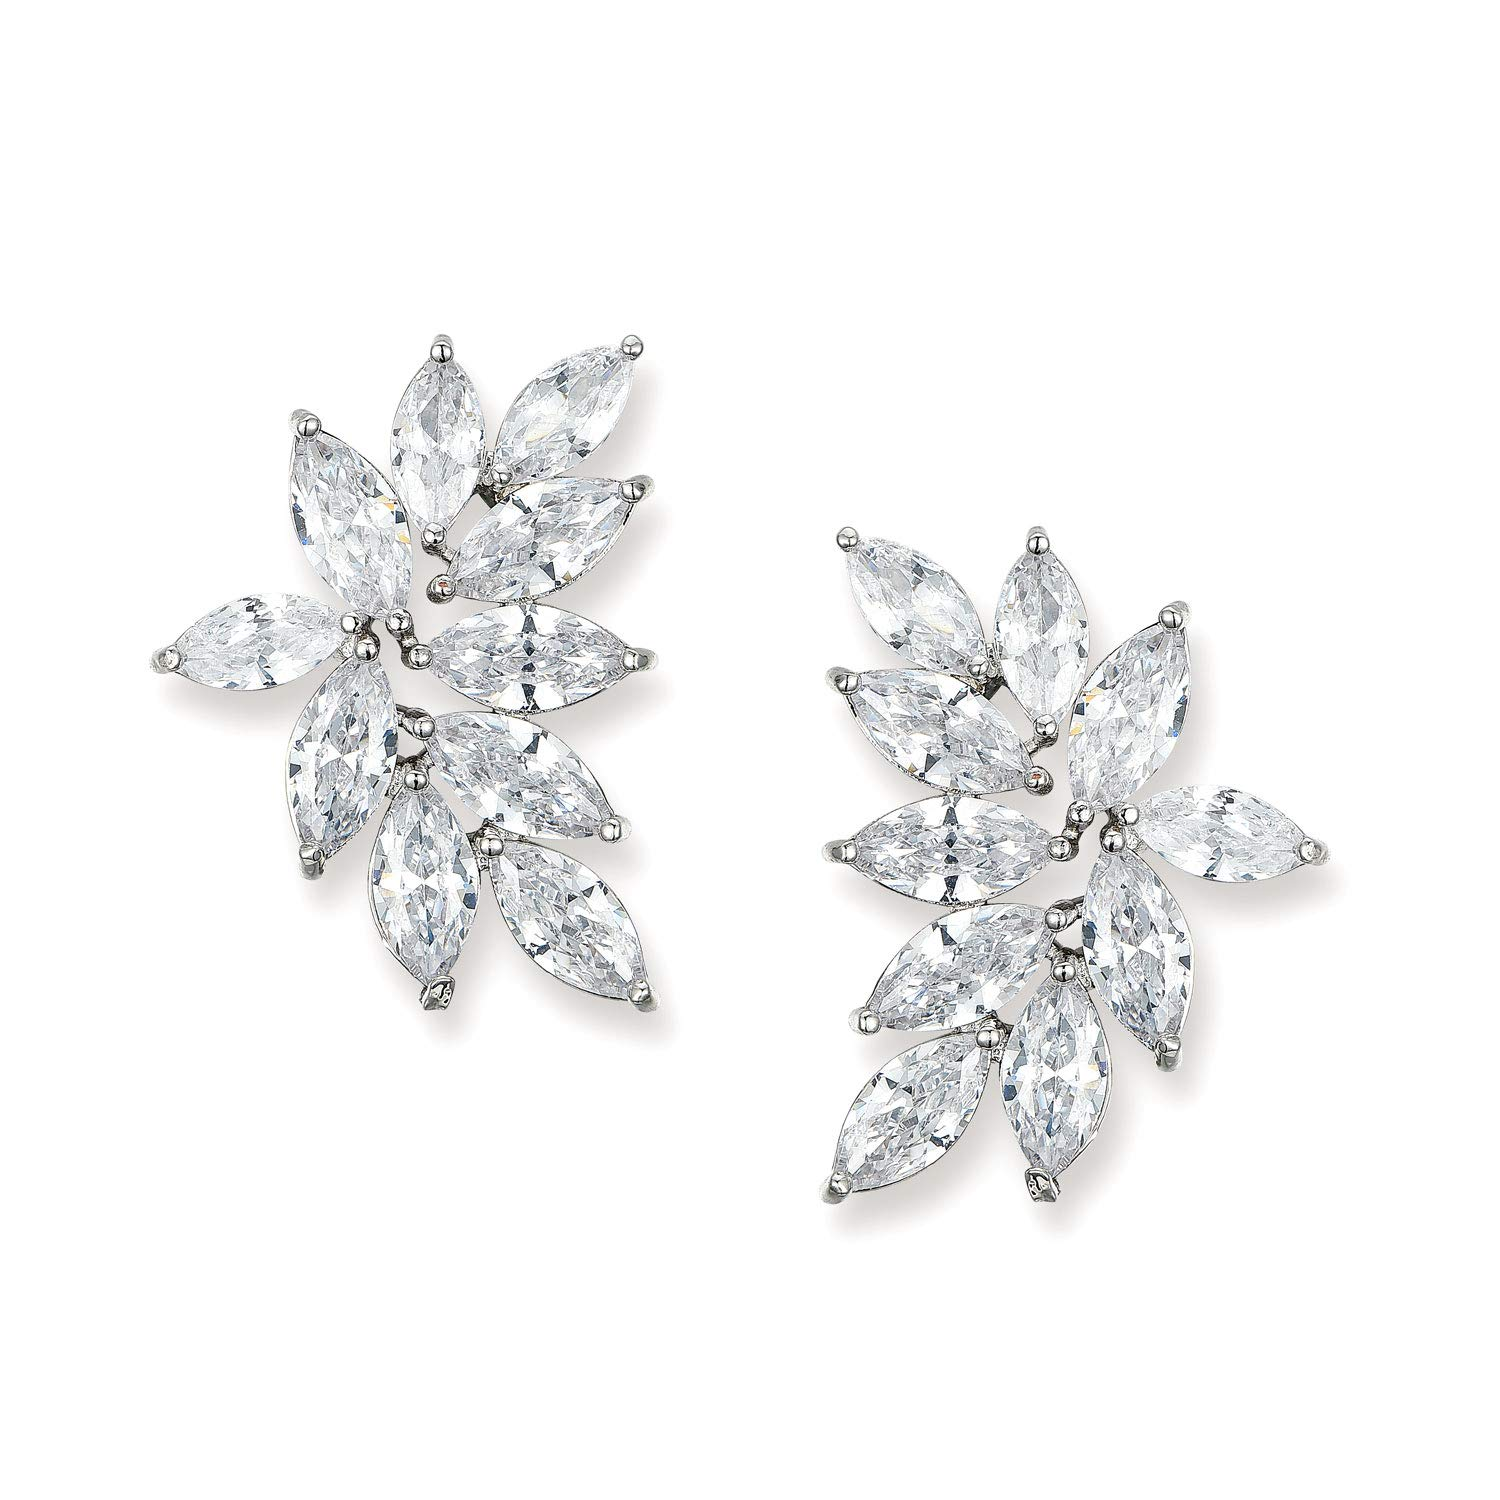 SWEETV Bridal Wedding Earrings for Brides Bridesmaid, Marquise Cubic Zirconia Rhinestone Cluster Earrings for Women, Prom